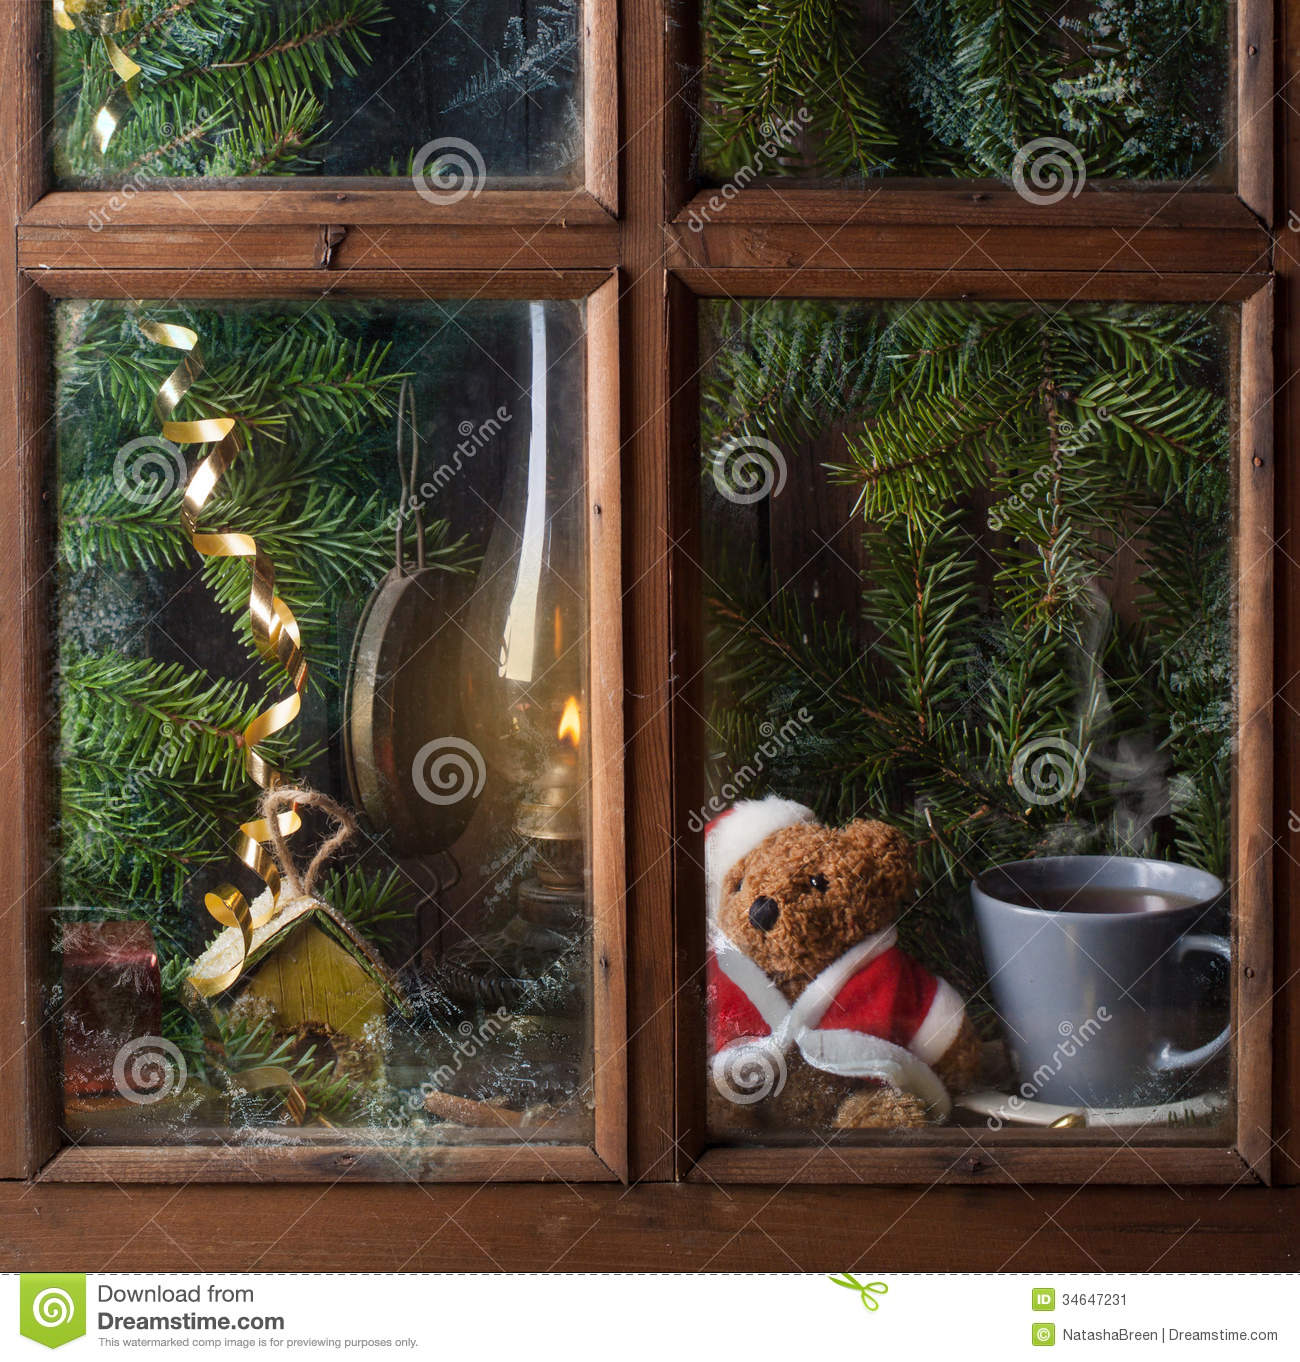 christmas decoration with teddy bear in window stock image. Black Bedroom Furniture Sets. Home Design Ideas